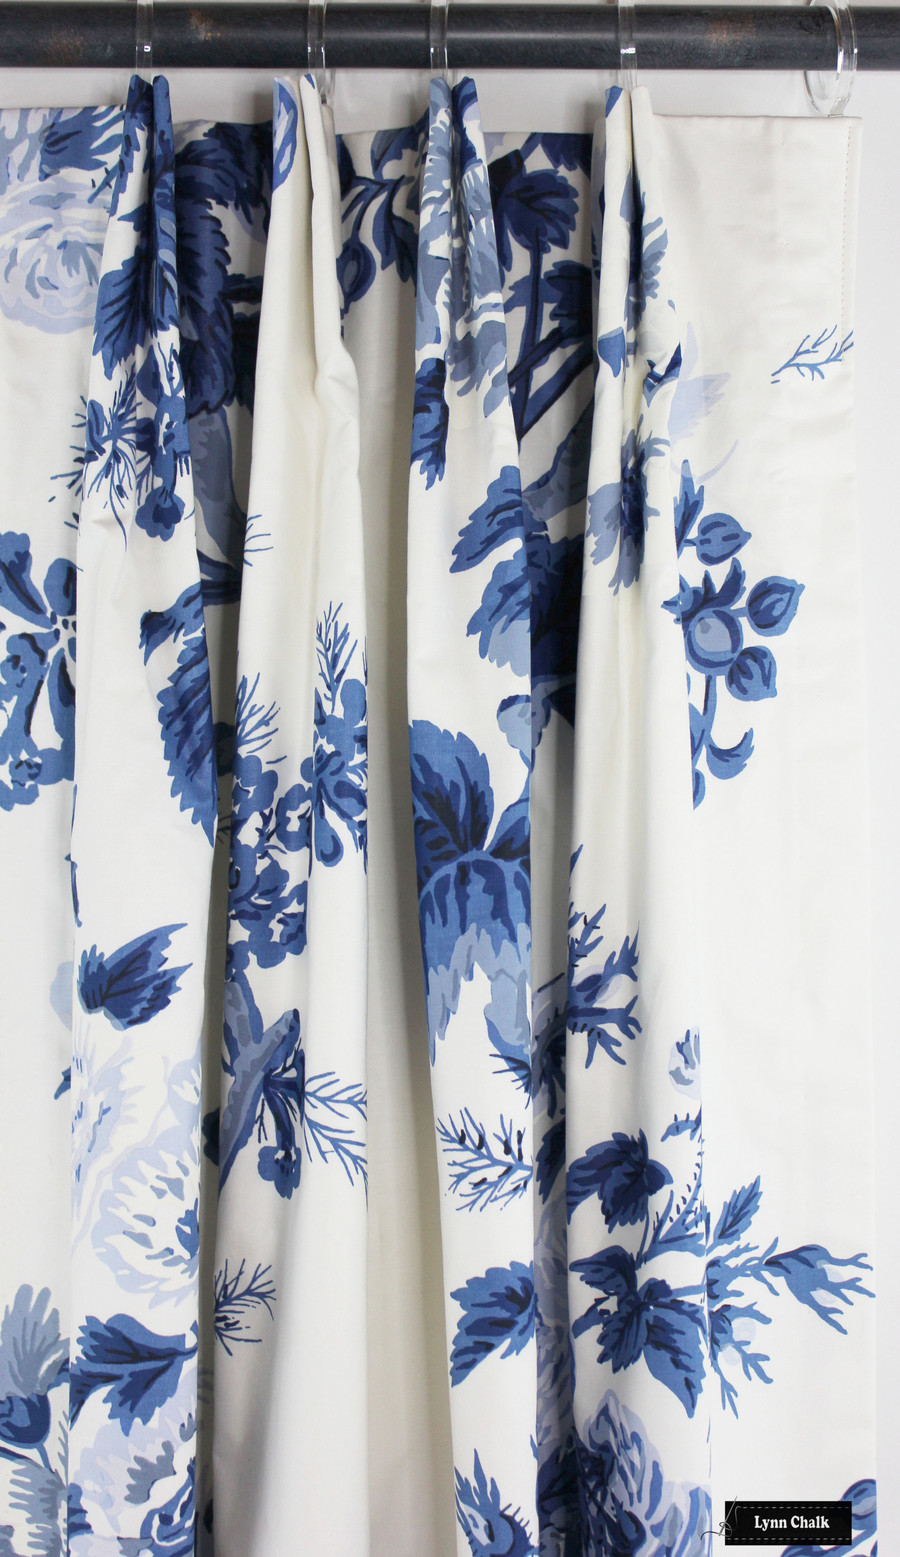 Schumacher Pyne Hollyhock Print Custom Drapes (shown in Indigo-comes in several colors)